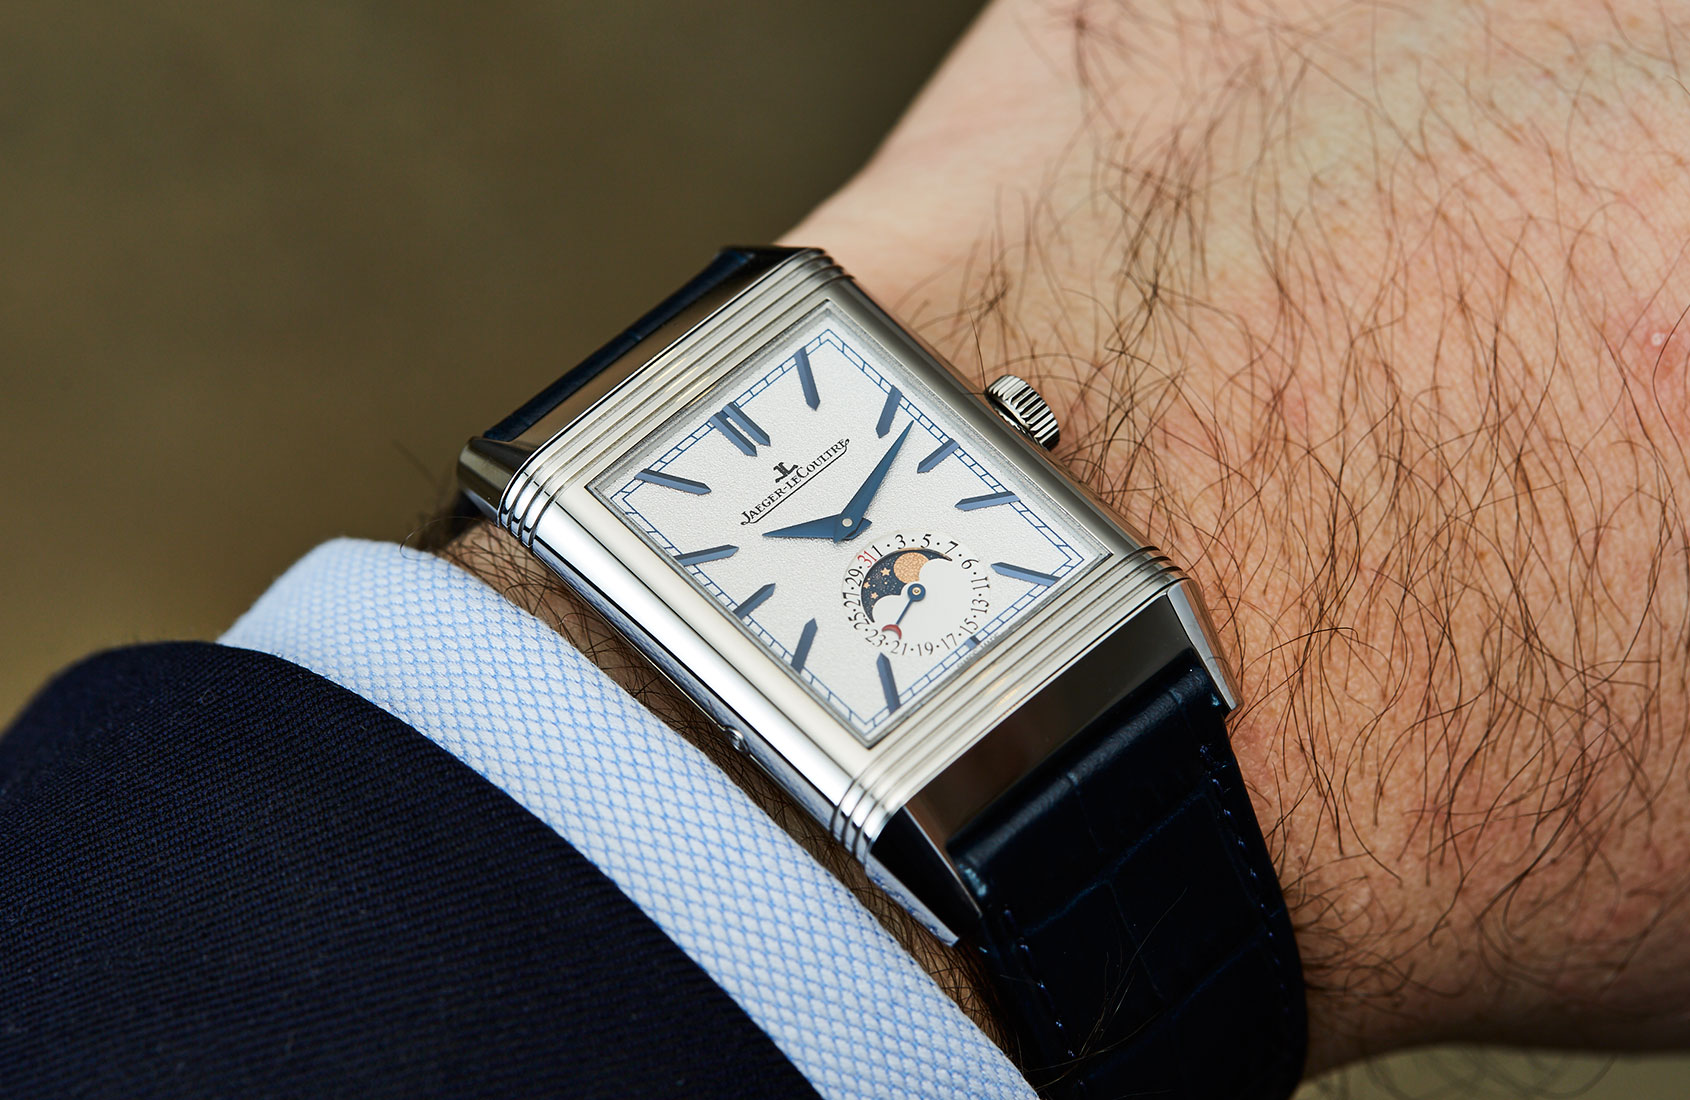 Flip it and reverse it – the Jaeger-LeCoultre Reverso Tribute Moon